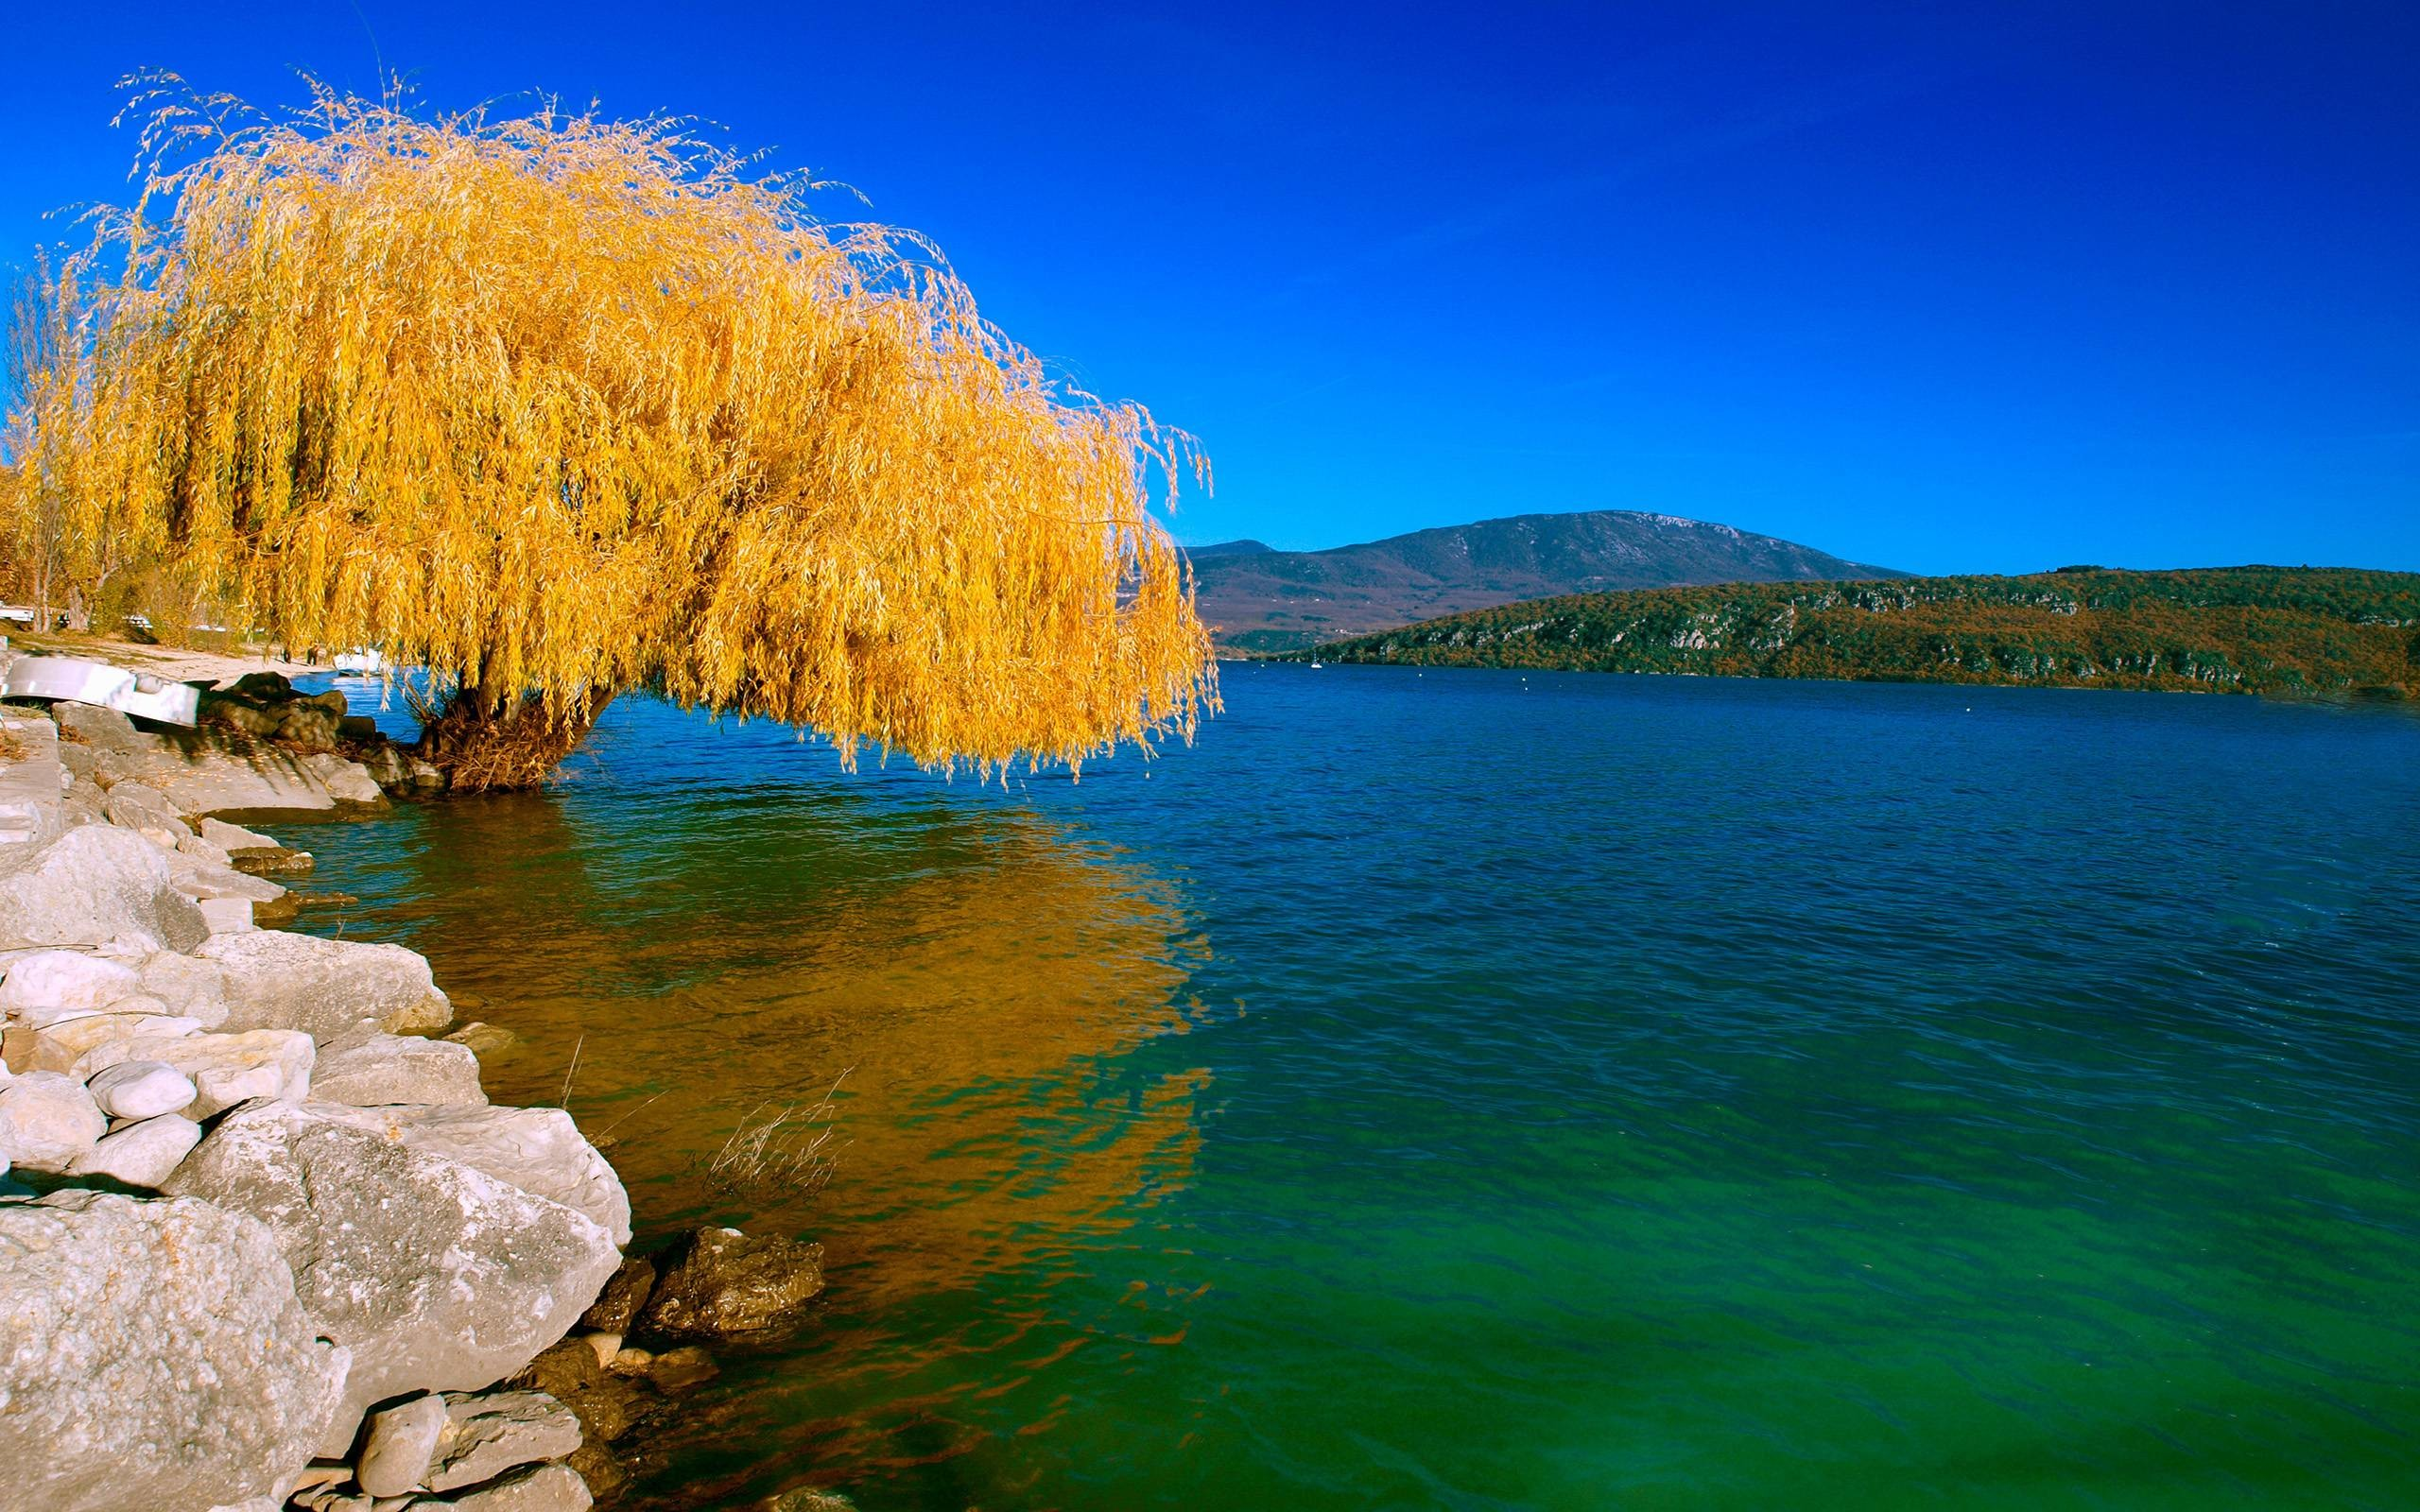 nature wallpaper full hd,body of water,nature,natural landscape,water,blue